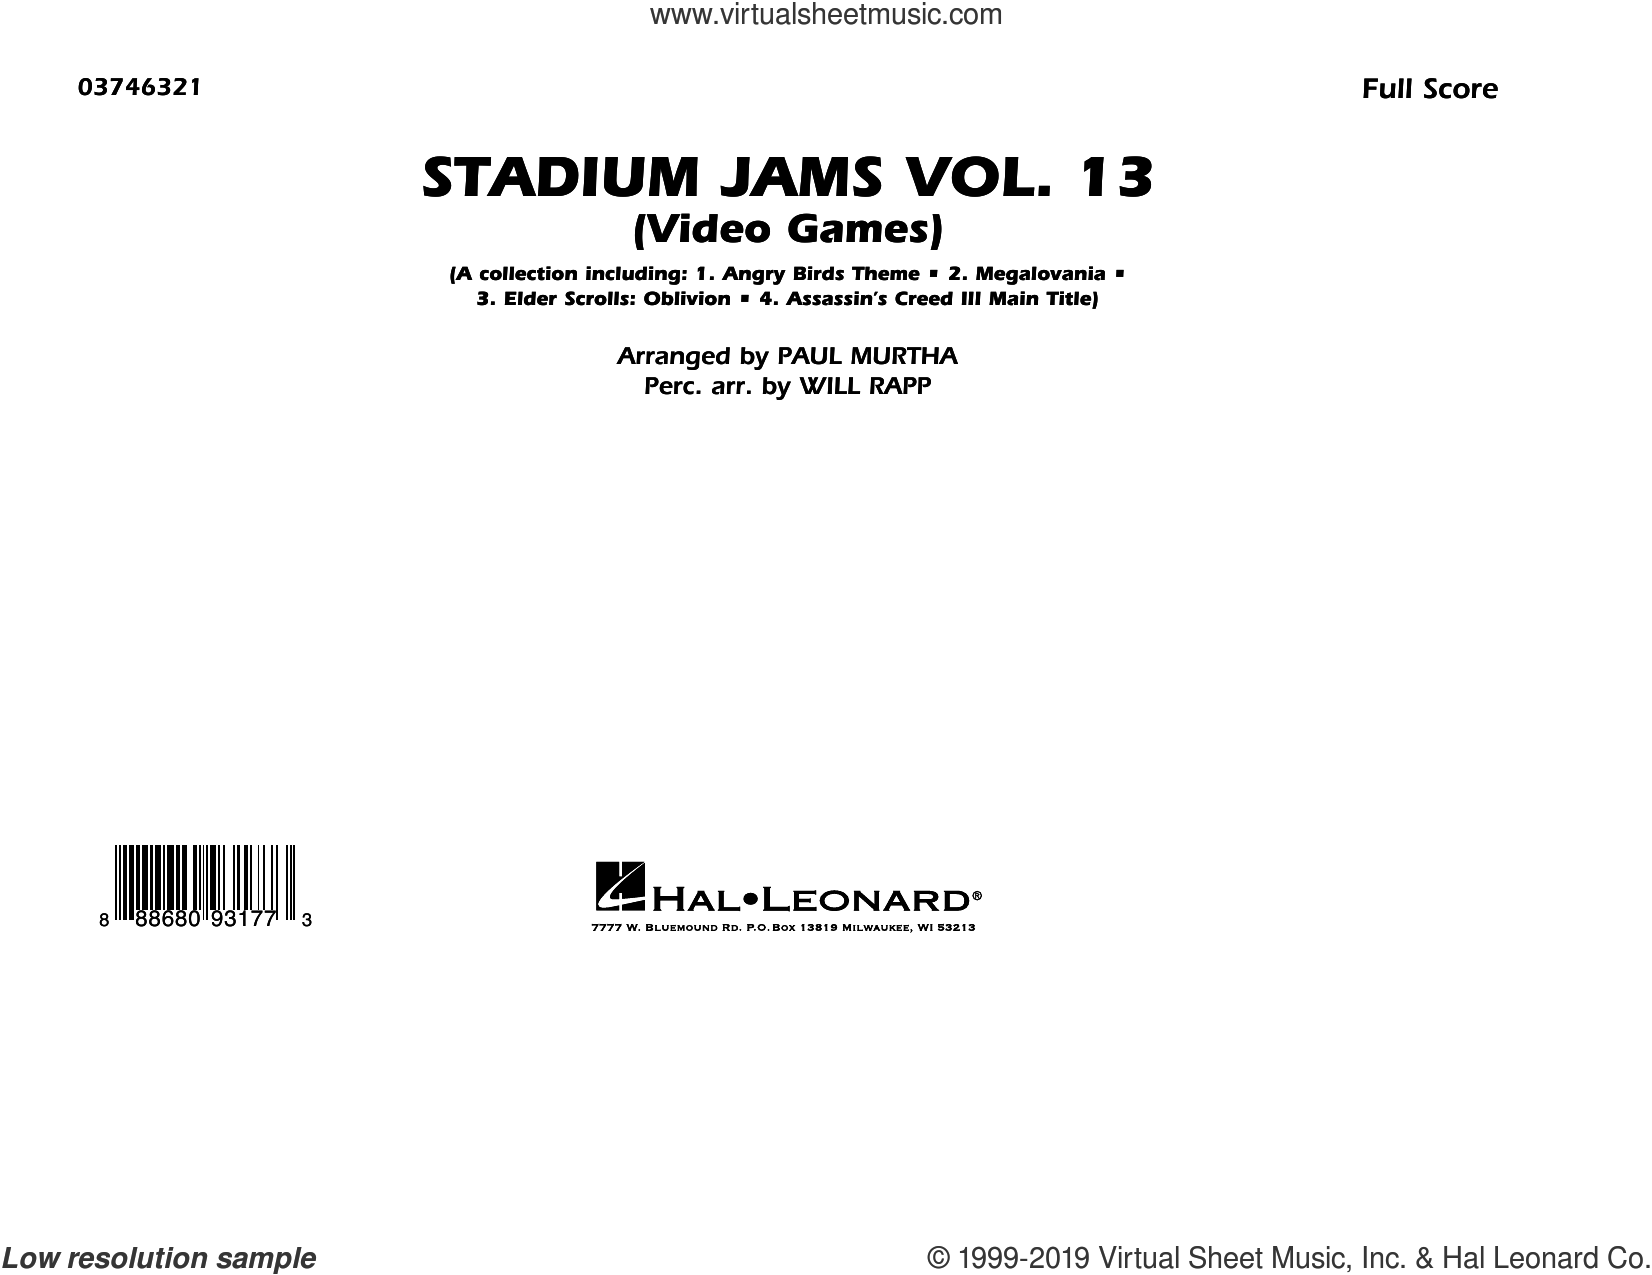 Stadium Jams Volume 13 (Video Games) (COMPLETE) sheet music for marching band by Paul Murtha, Paul Murtha & Will Rapp and Will Rapp, intermediate skill level